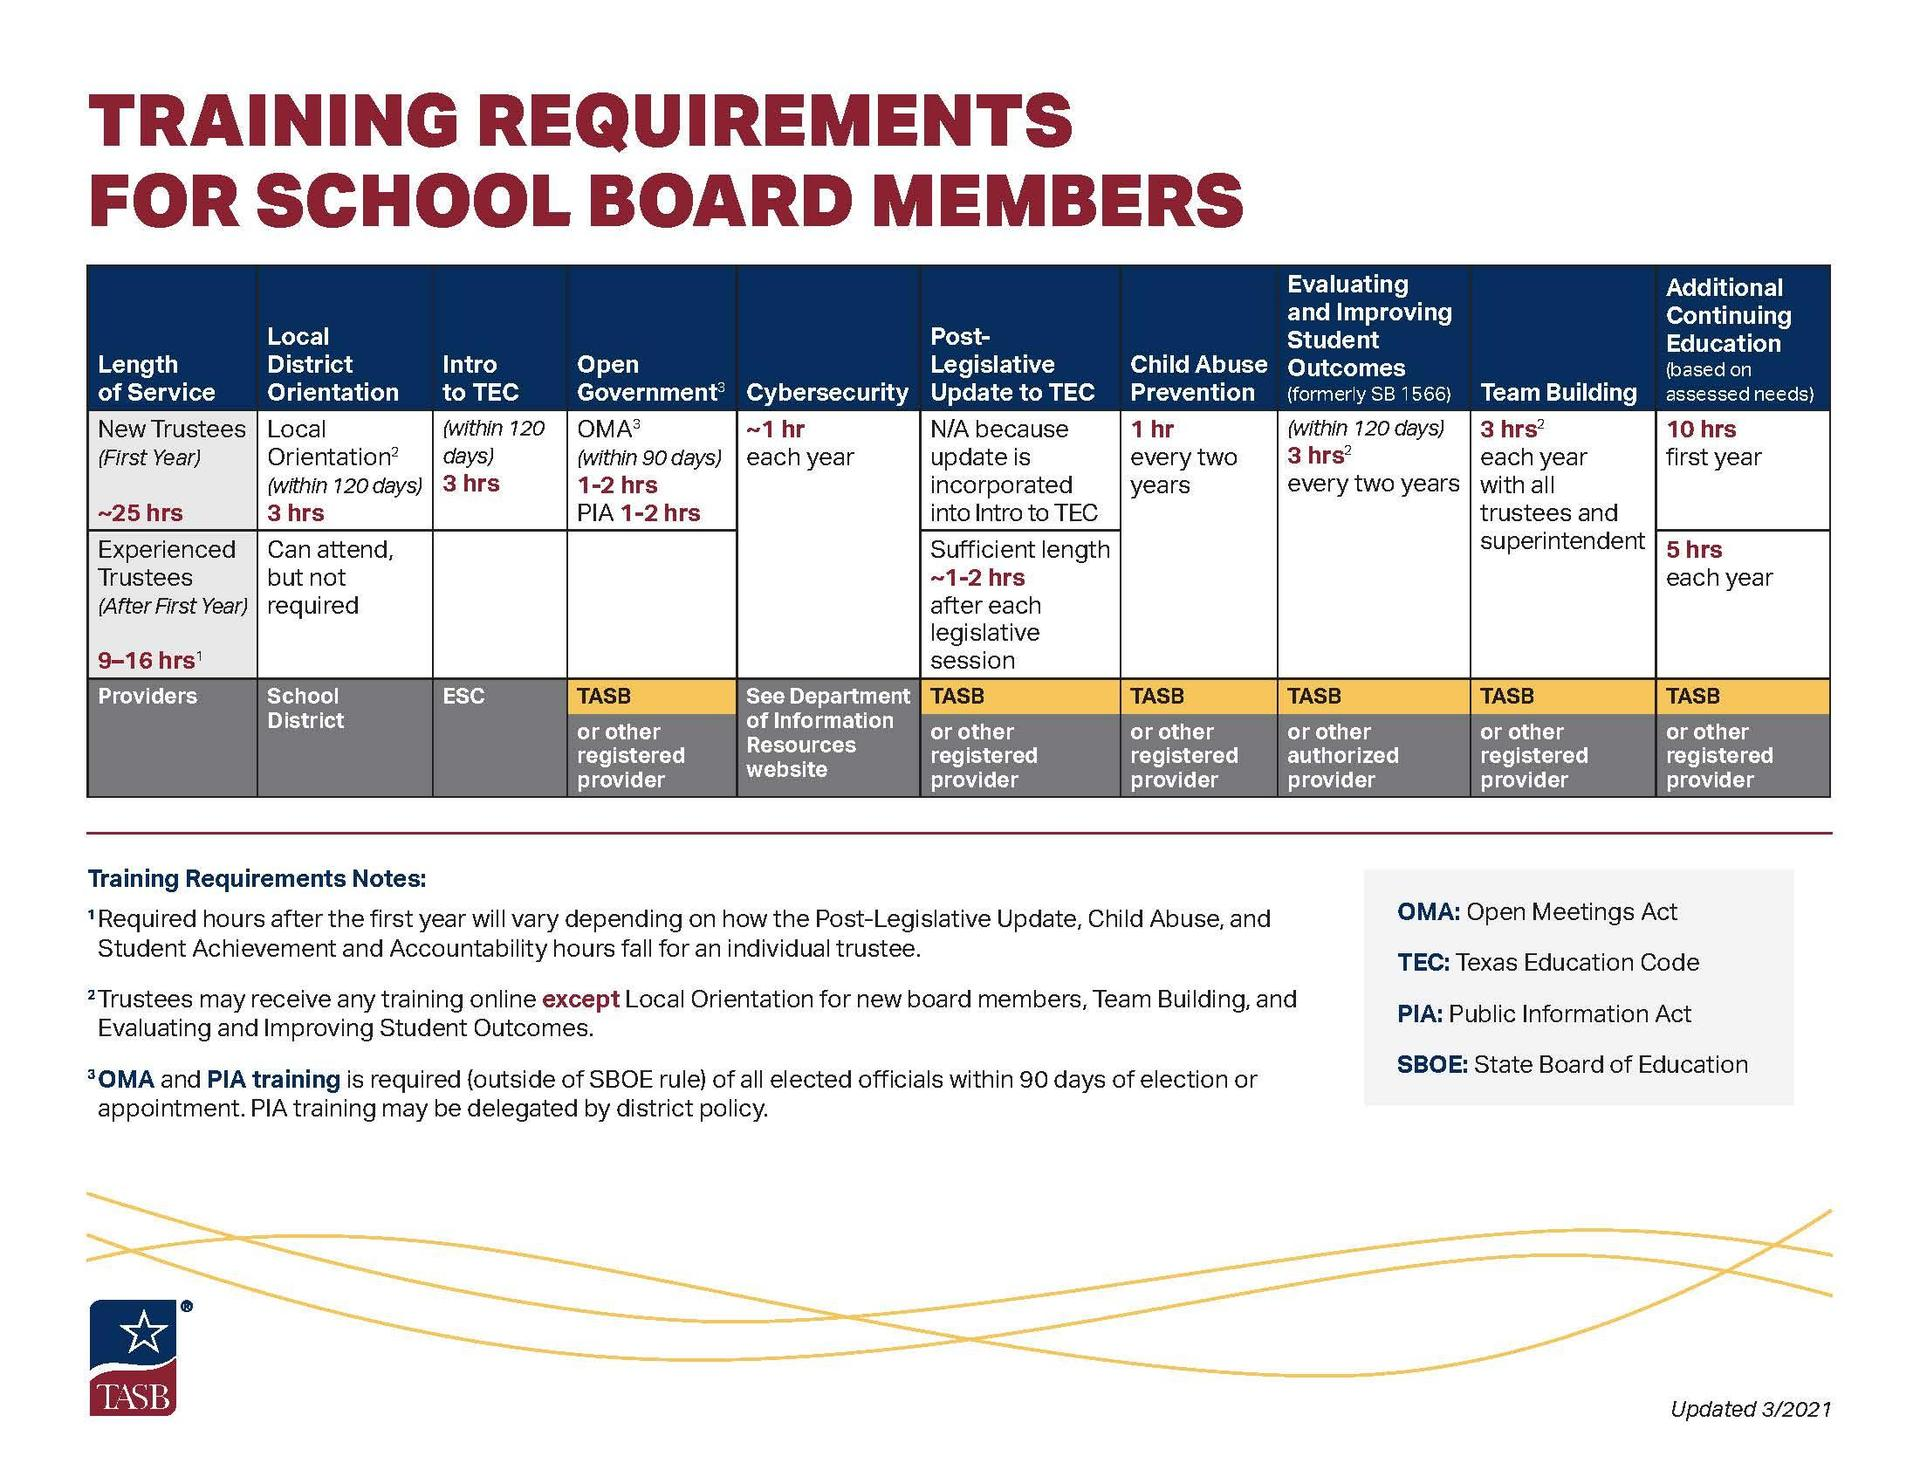 Board Training Requirements